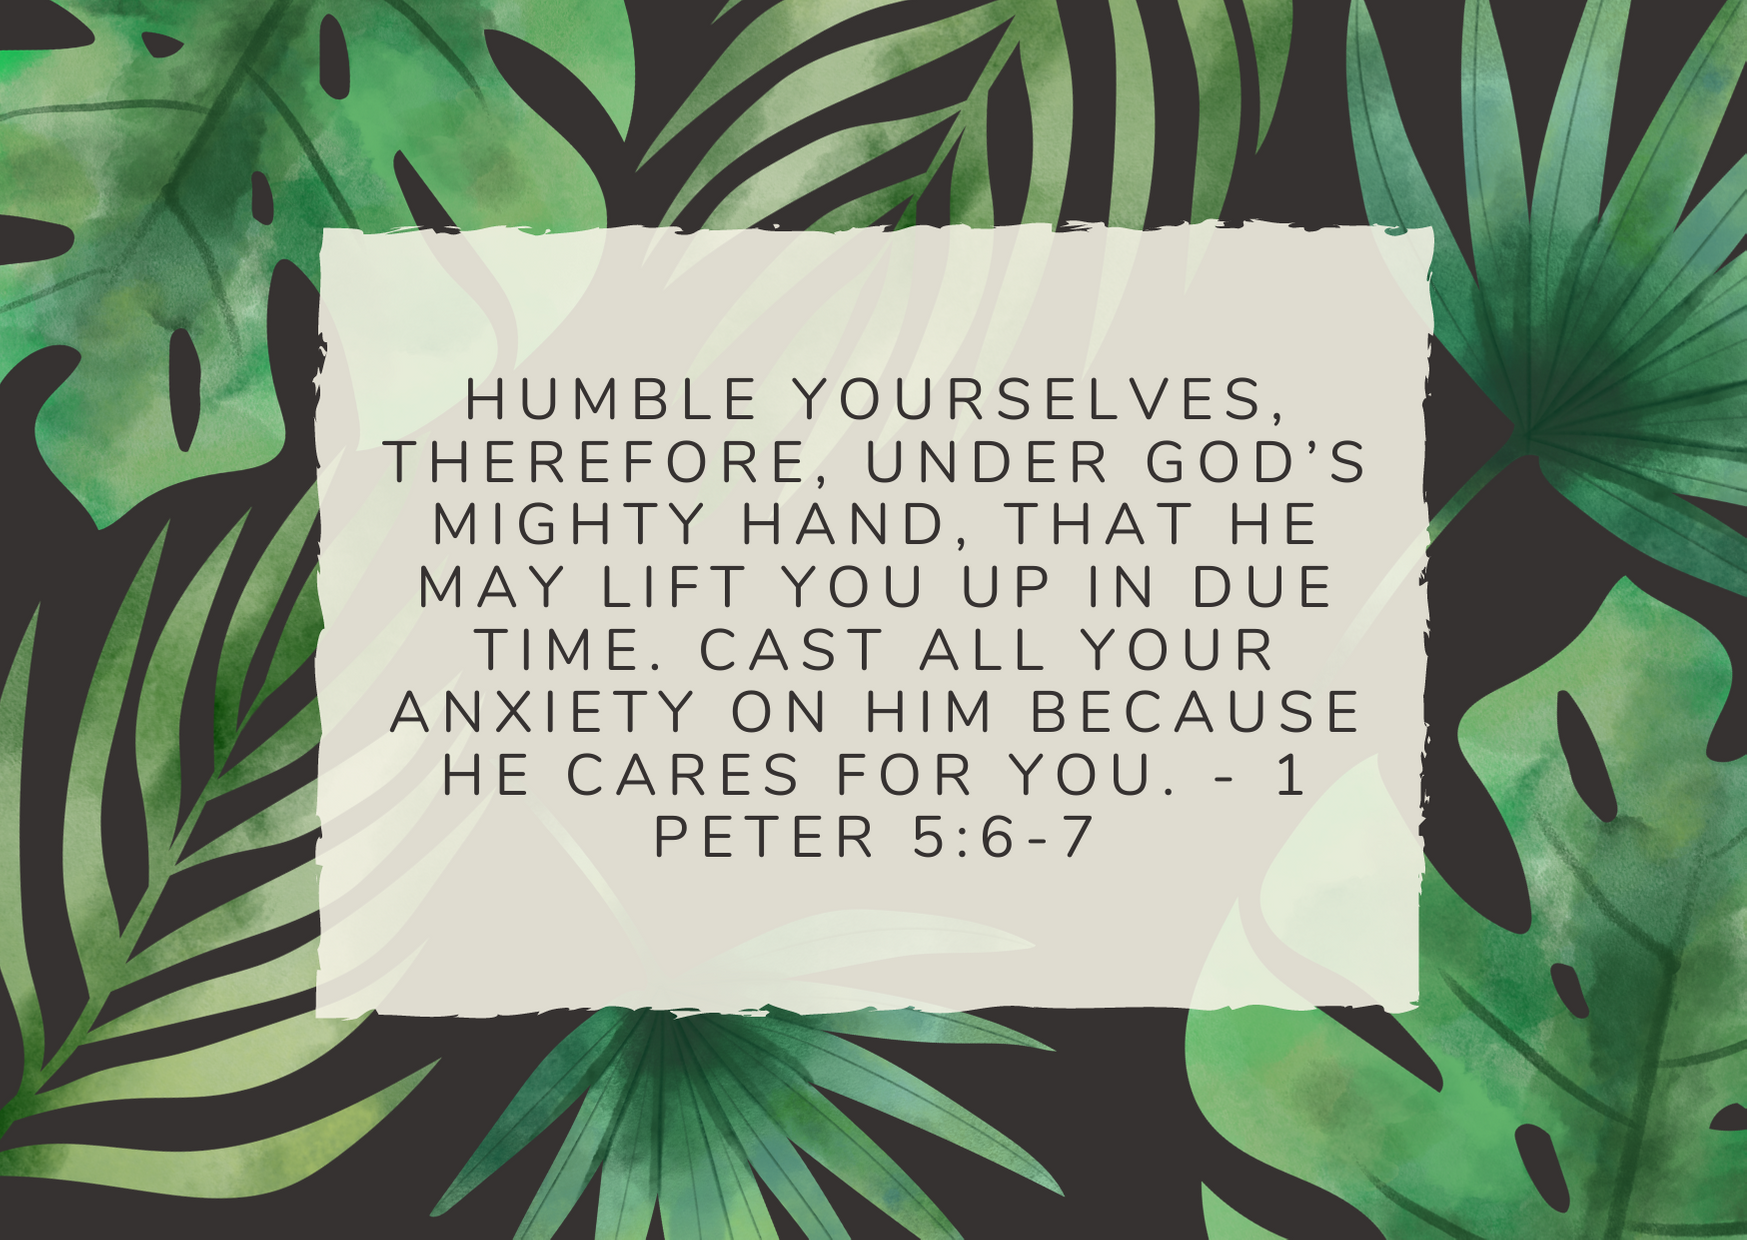 Humble yourselves, therefore, under God's mighty hand, that he may lift you up in due time. Cast all your anxiety on him because he cares for you. - 1 Peter 5:6-7